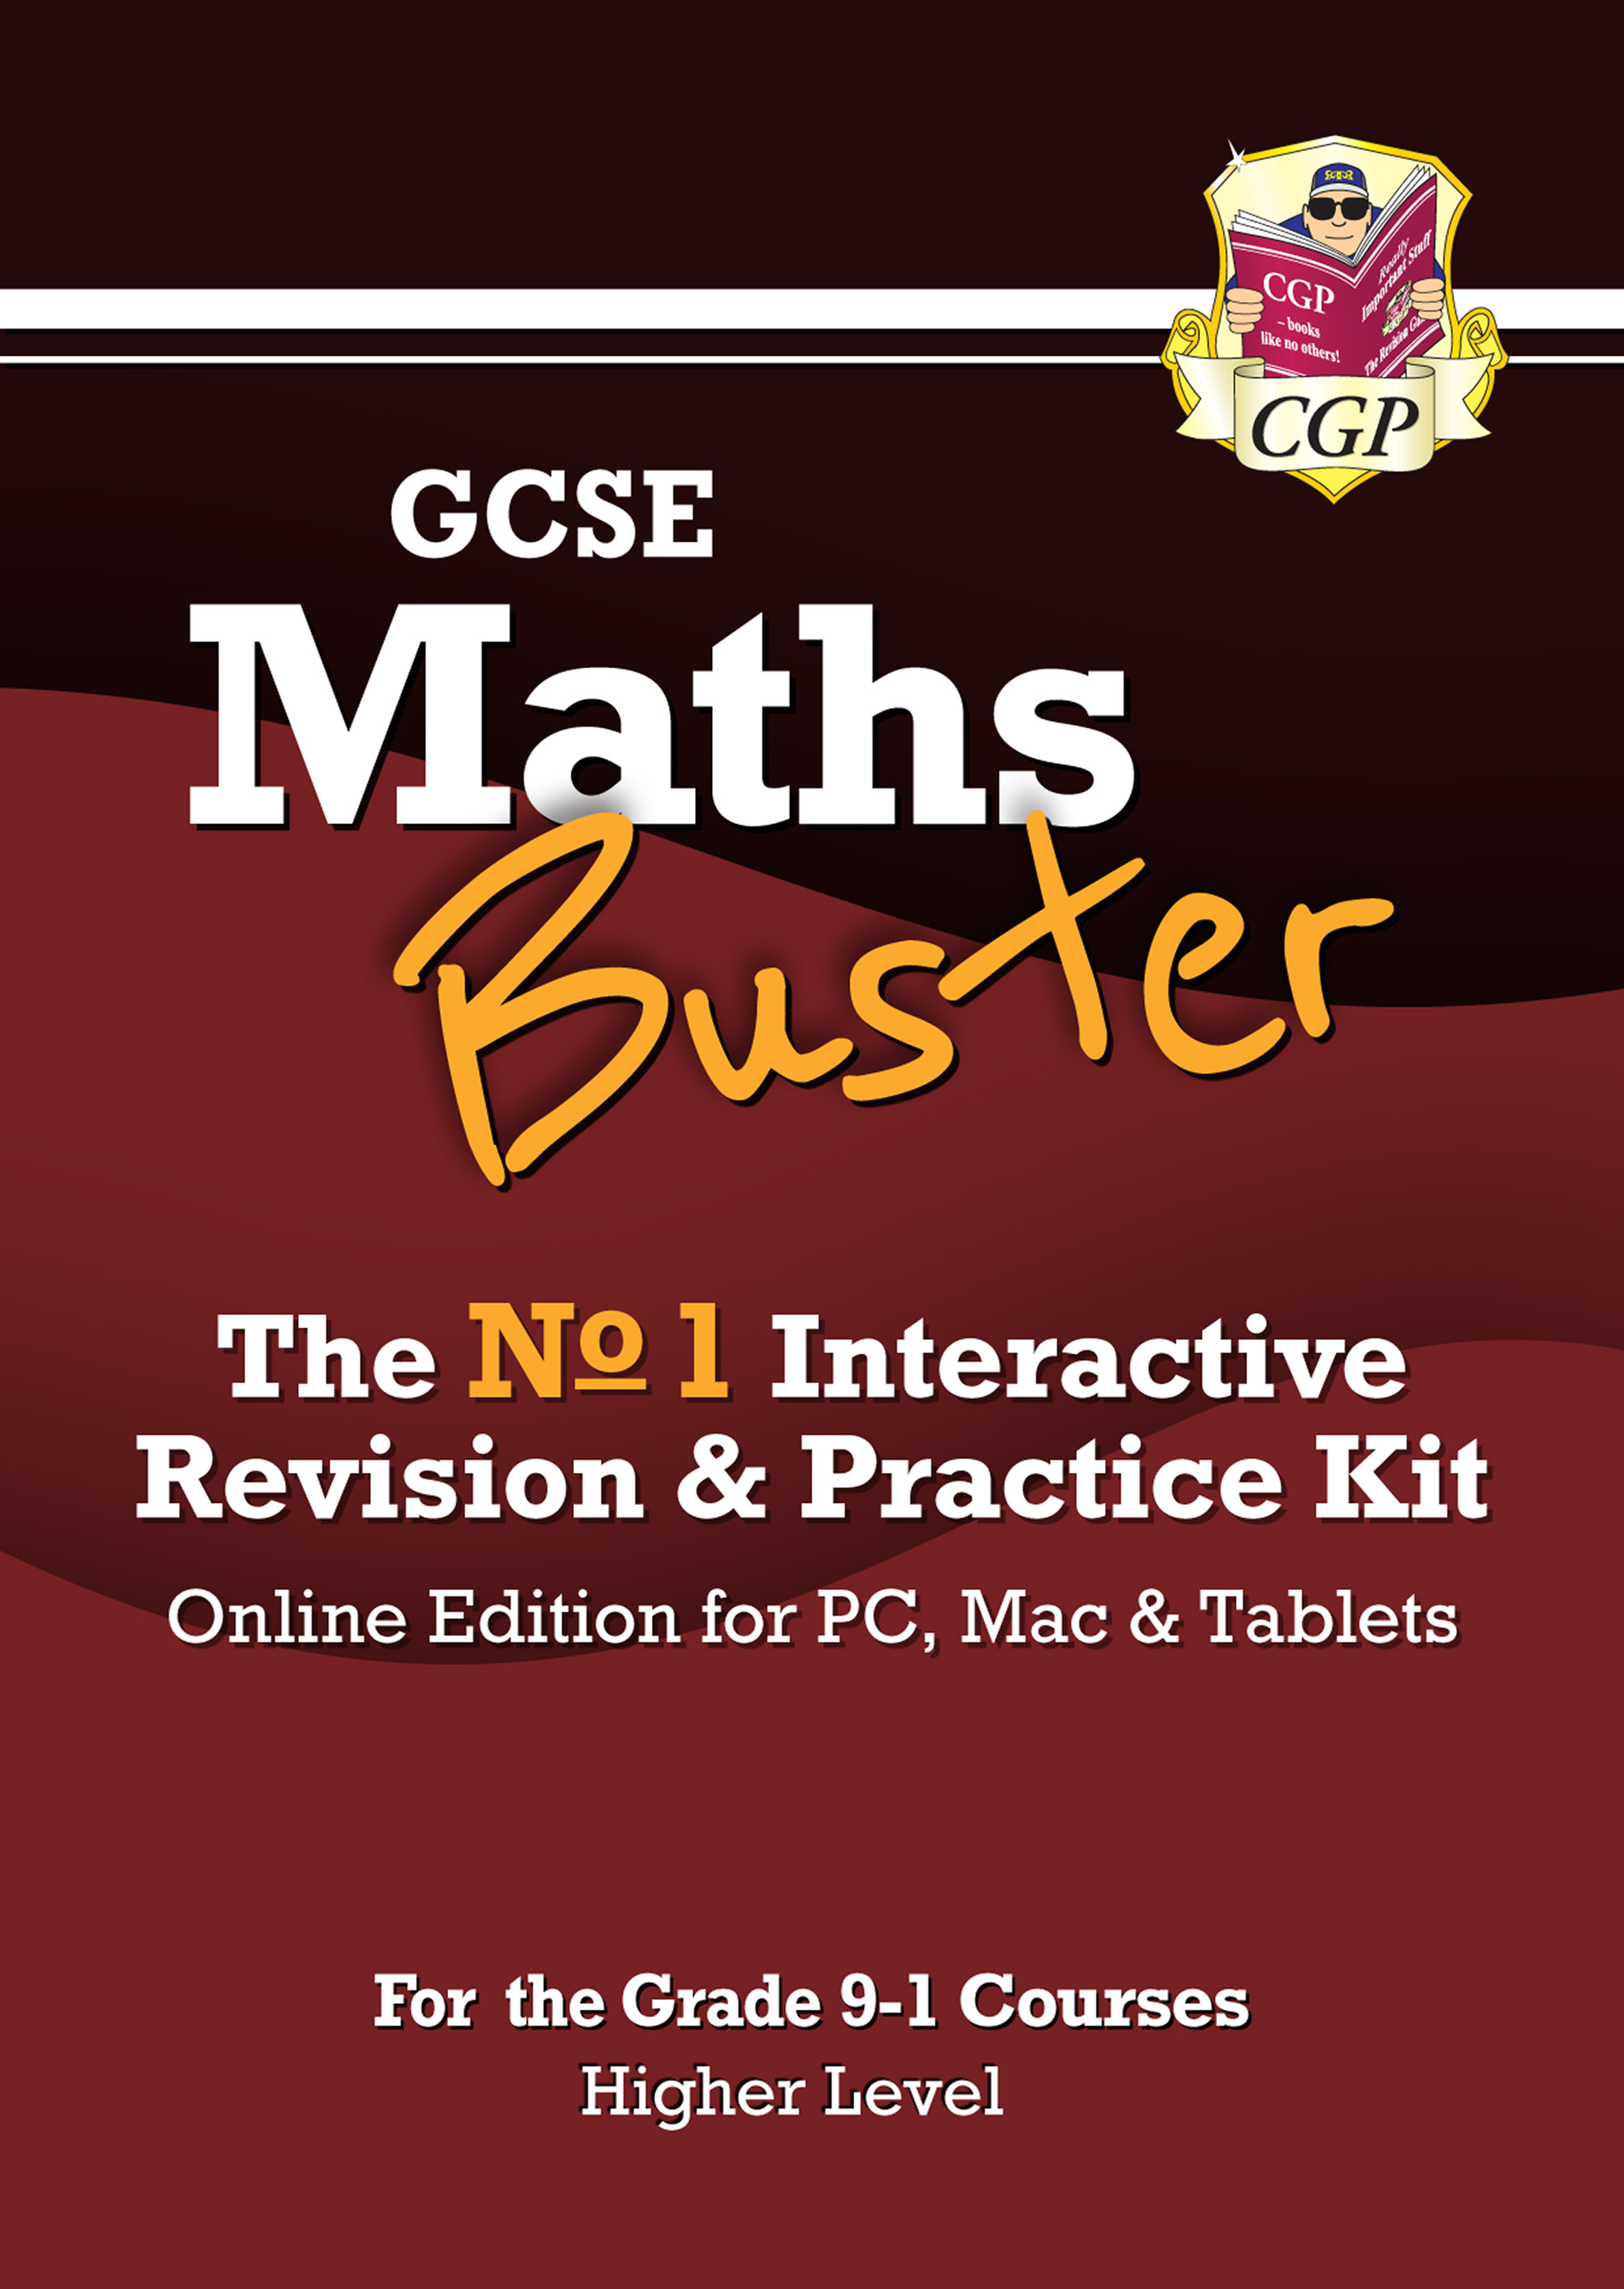 42MBHG3 - MathsBuster: GCSE Maths Interactive Revision (Grade 9-1 Course) Higher - Online Edition